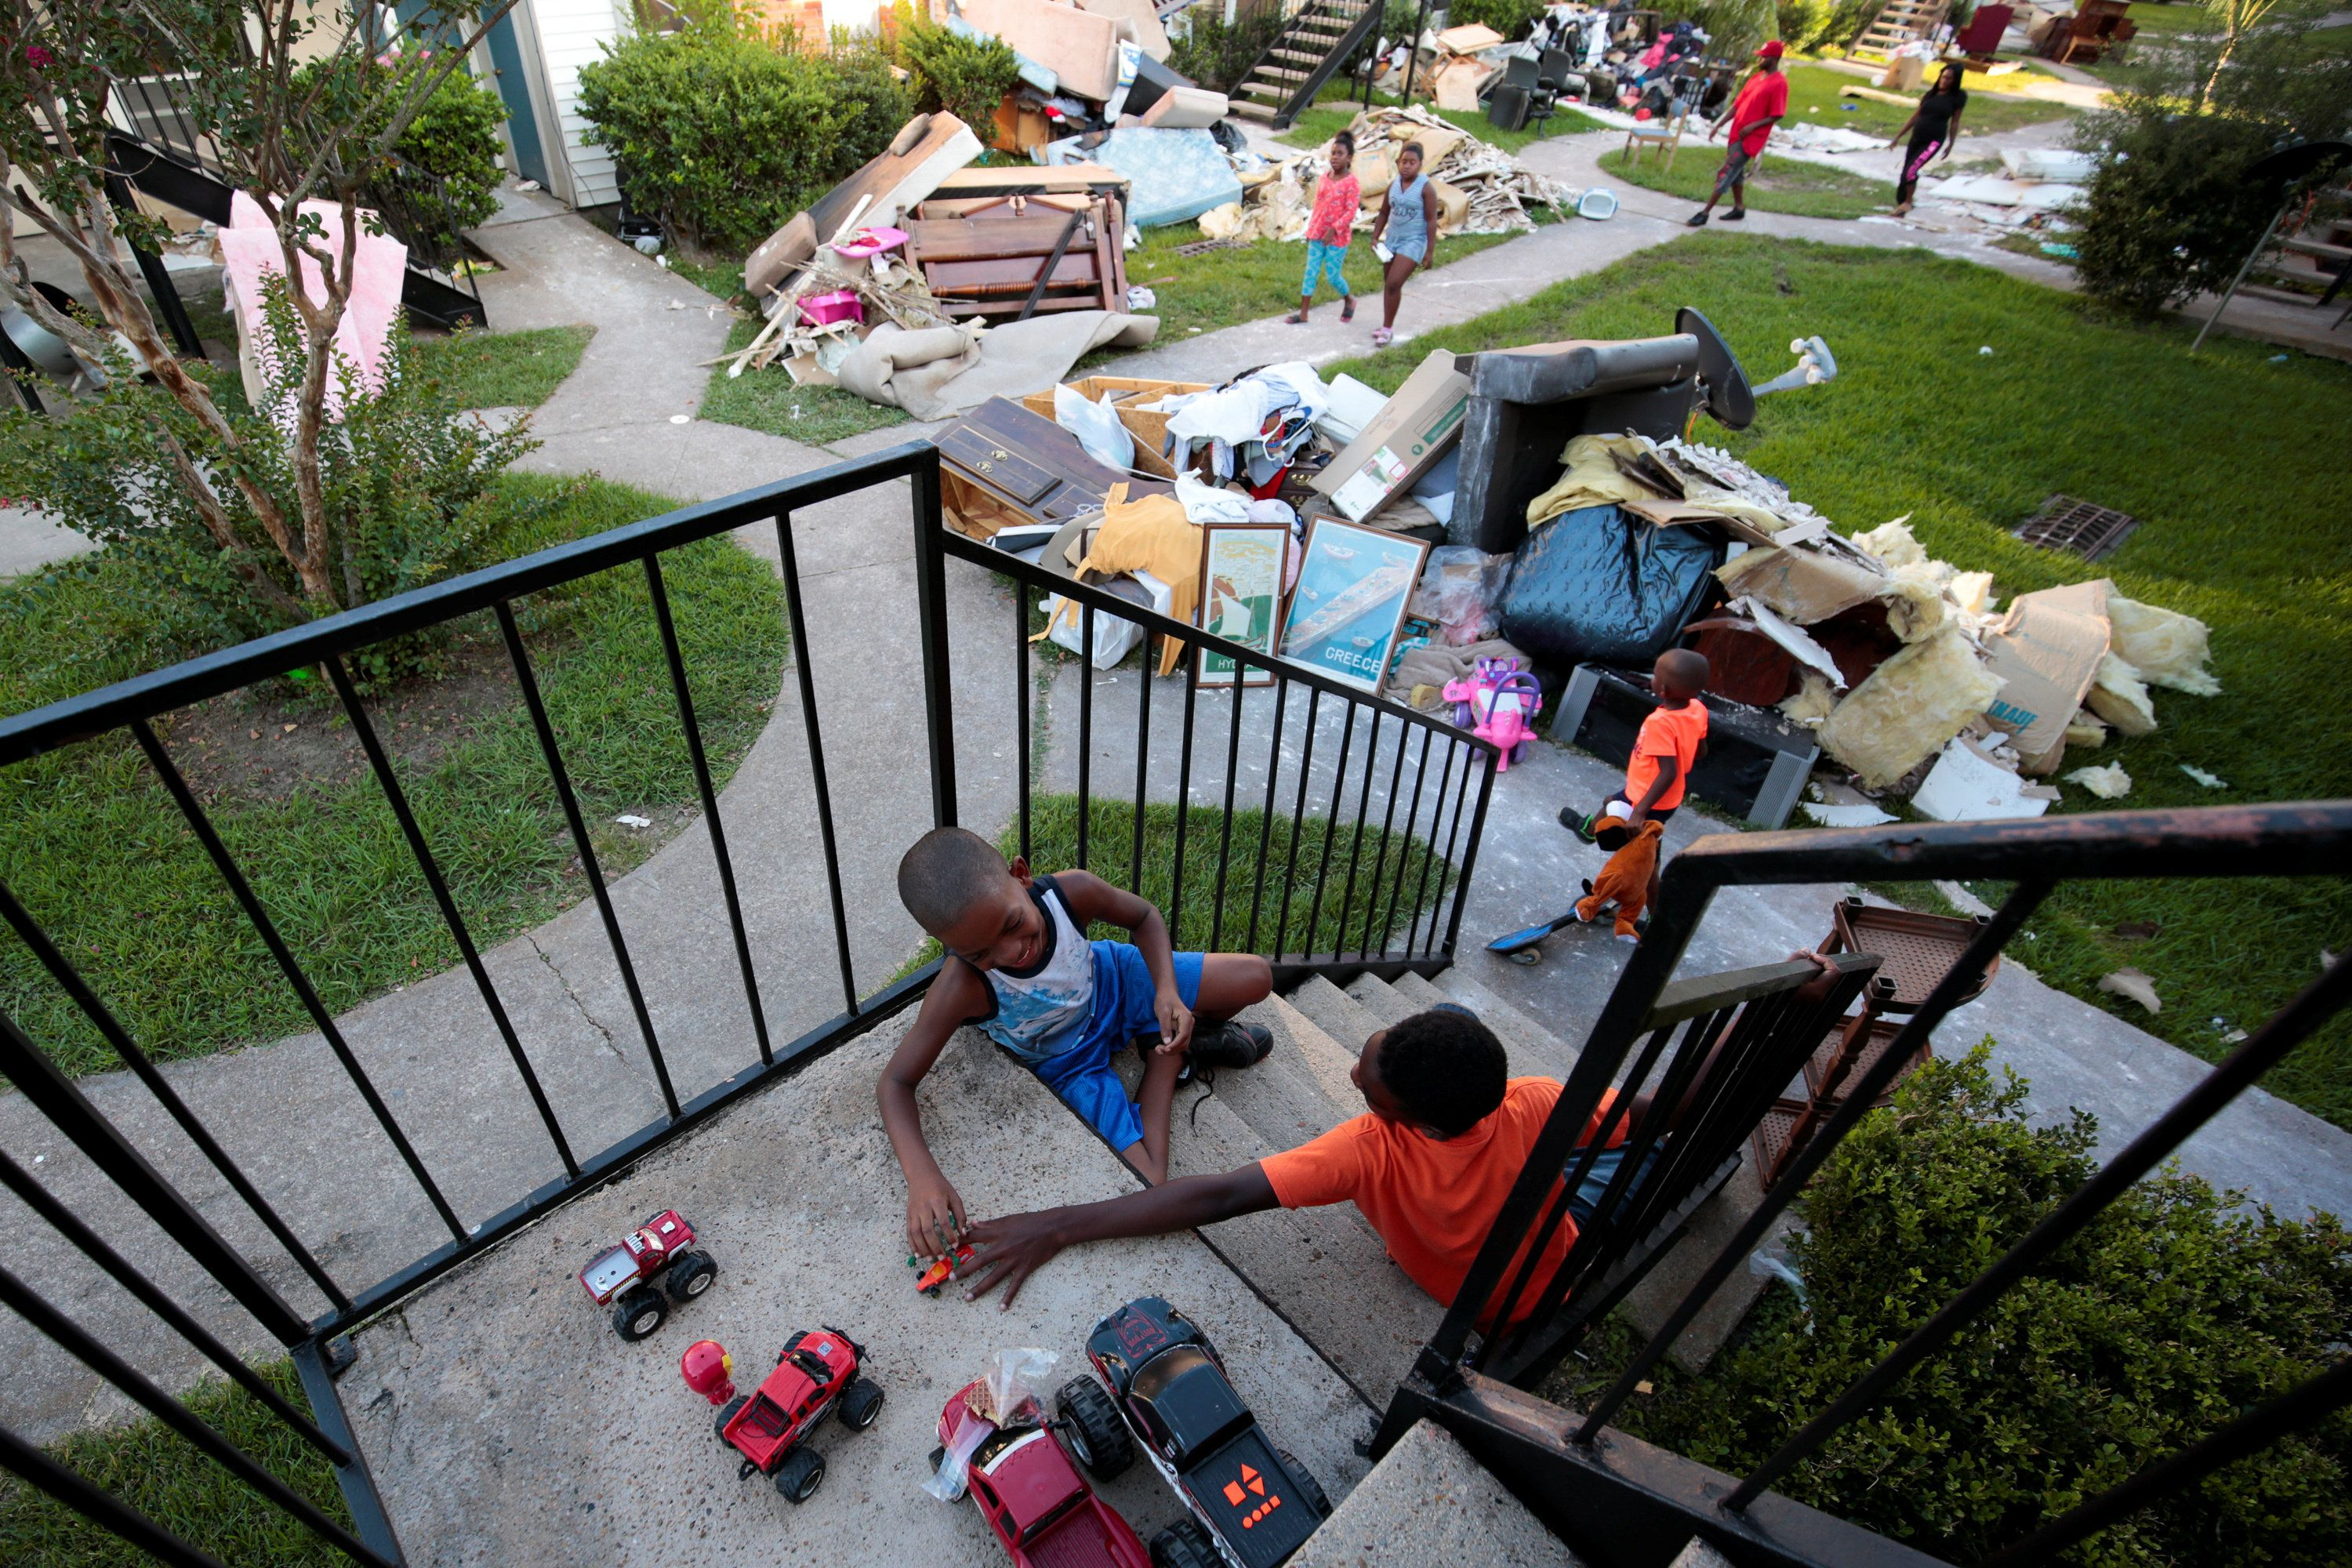 From left, Darius Smith, 9,  Kameron Smith, 4, and Deandre Green, 10, play with toys that they found in the piles of destroyed property at Crofton Place Apartments in the aftermath of Hurricane Harvey in Houston, Texas, U.S. September 8, 2017. The children's apartment was destroyed by the flood waters. Picture taken September 8, 2017. REUTERS/Chris Aluka Berry